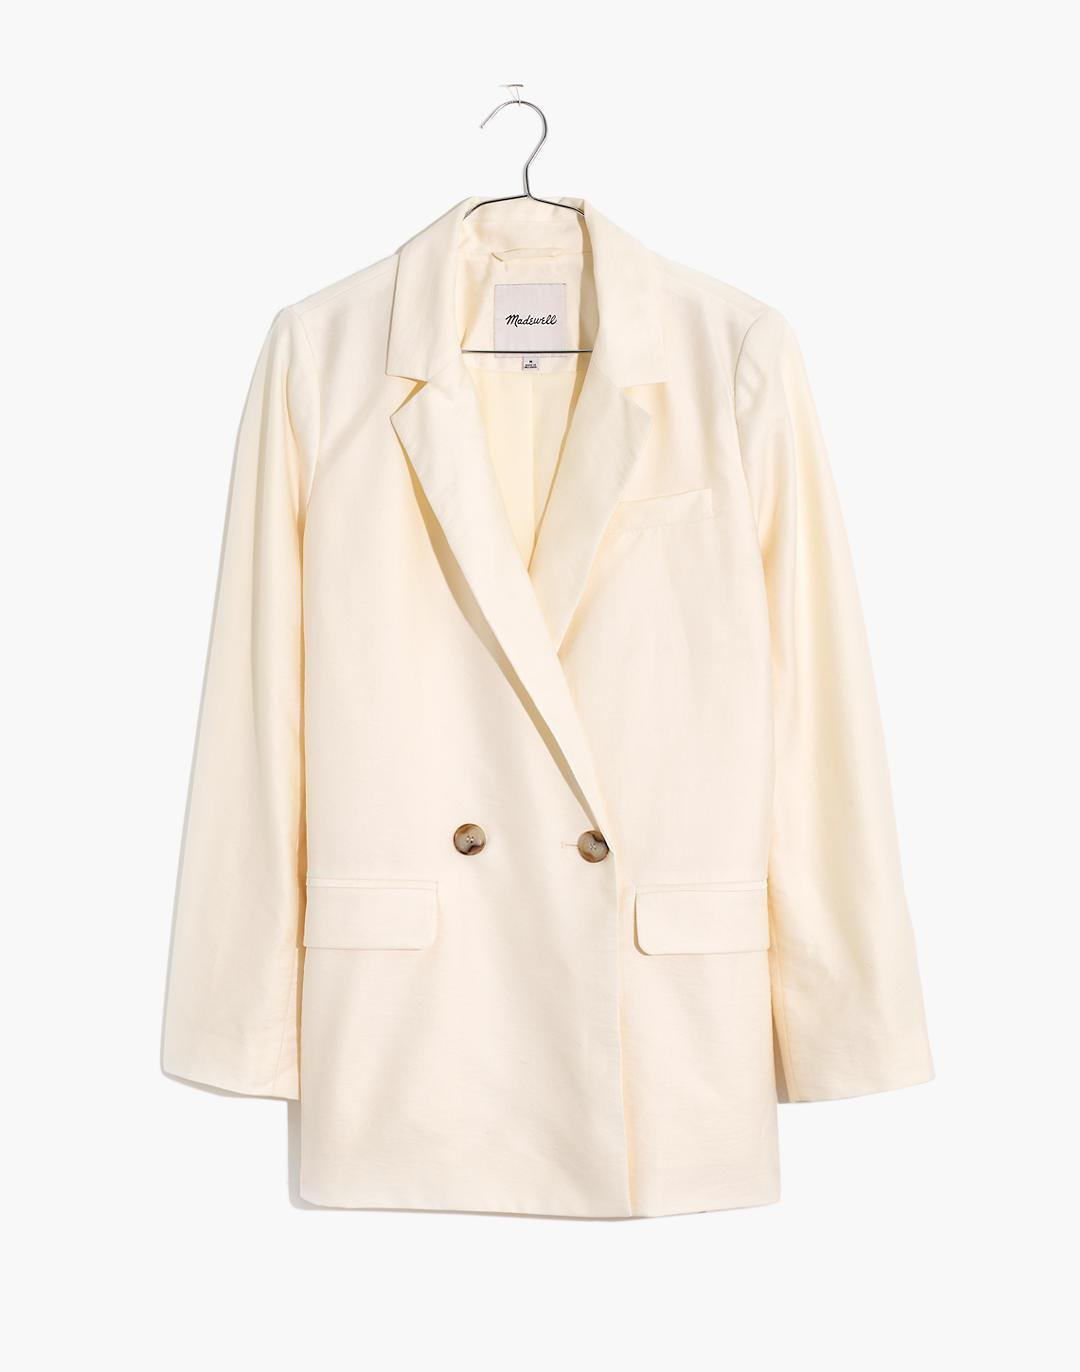 Plus Caldwell Double-Breasted Blazer: Two Button Edition 1